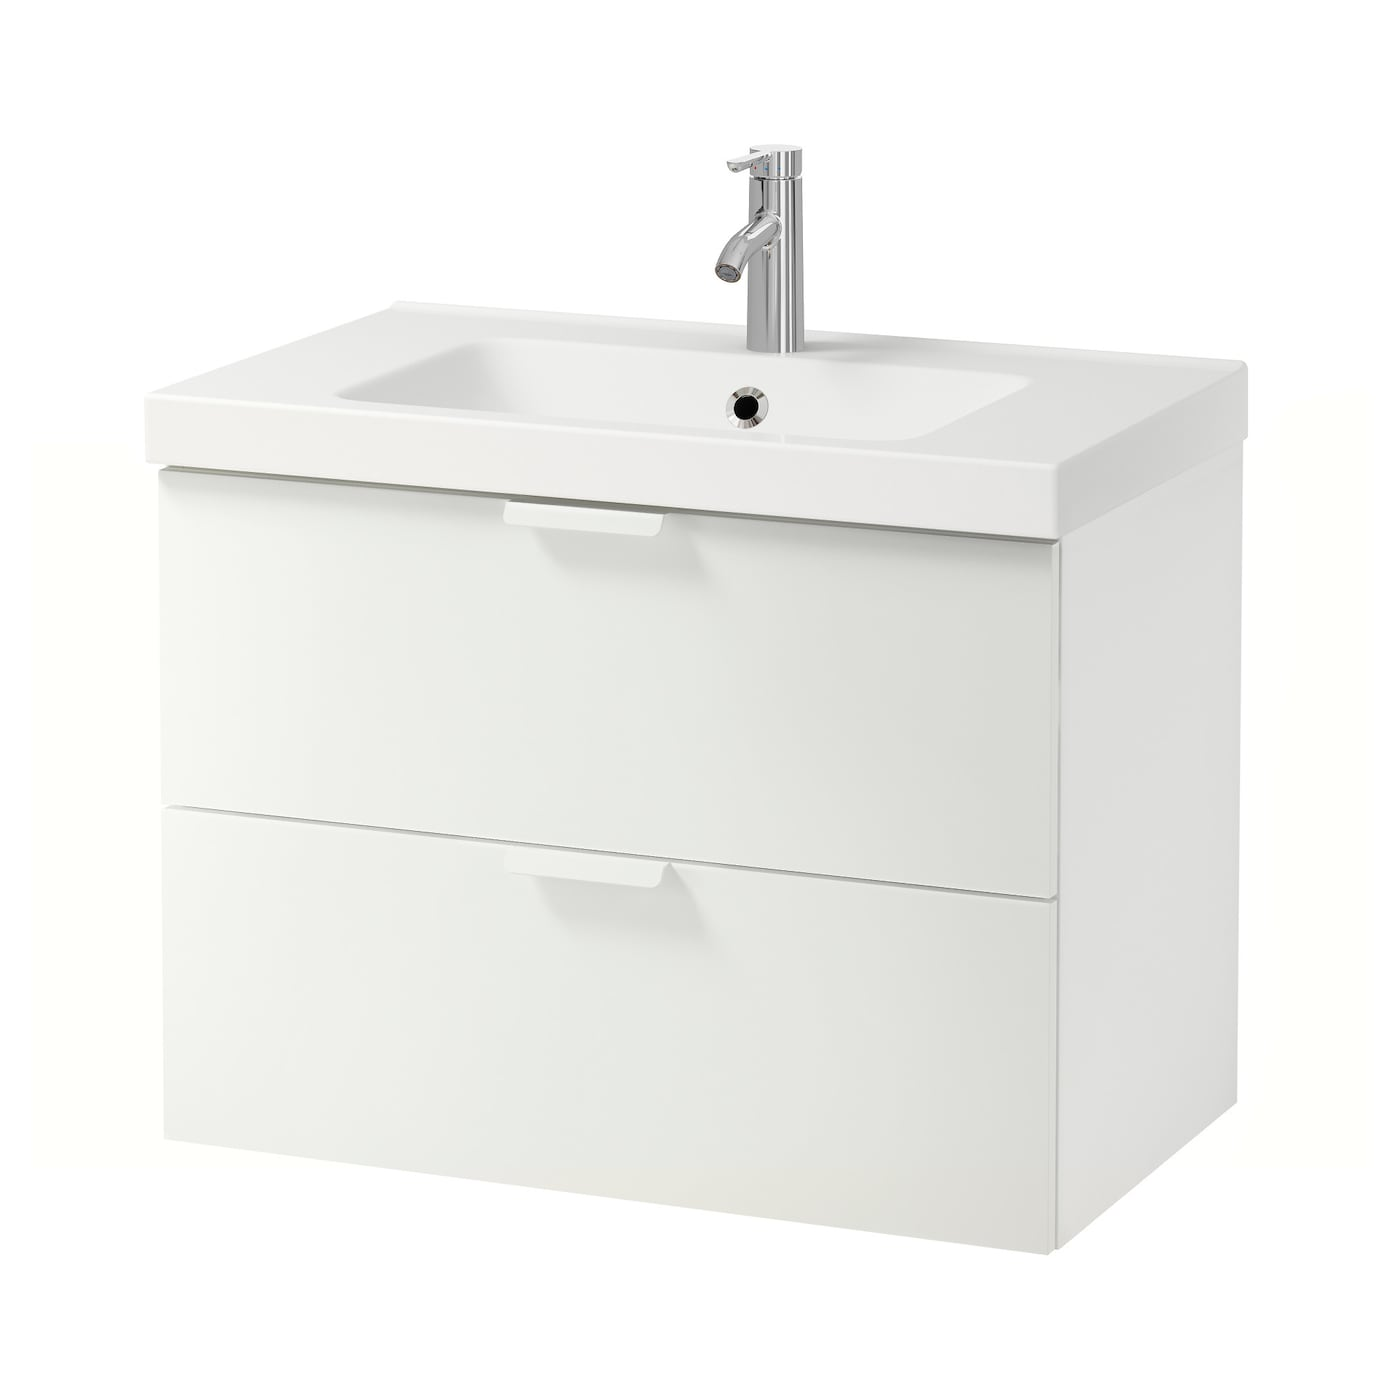 odensvik godmorgon meuble lavabo 2tir blanc 83 x 49 x 64 cm ikea. Black Bedroom Furniture Sets. Home Design Ideas